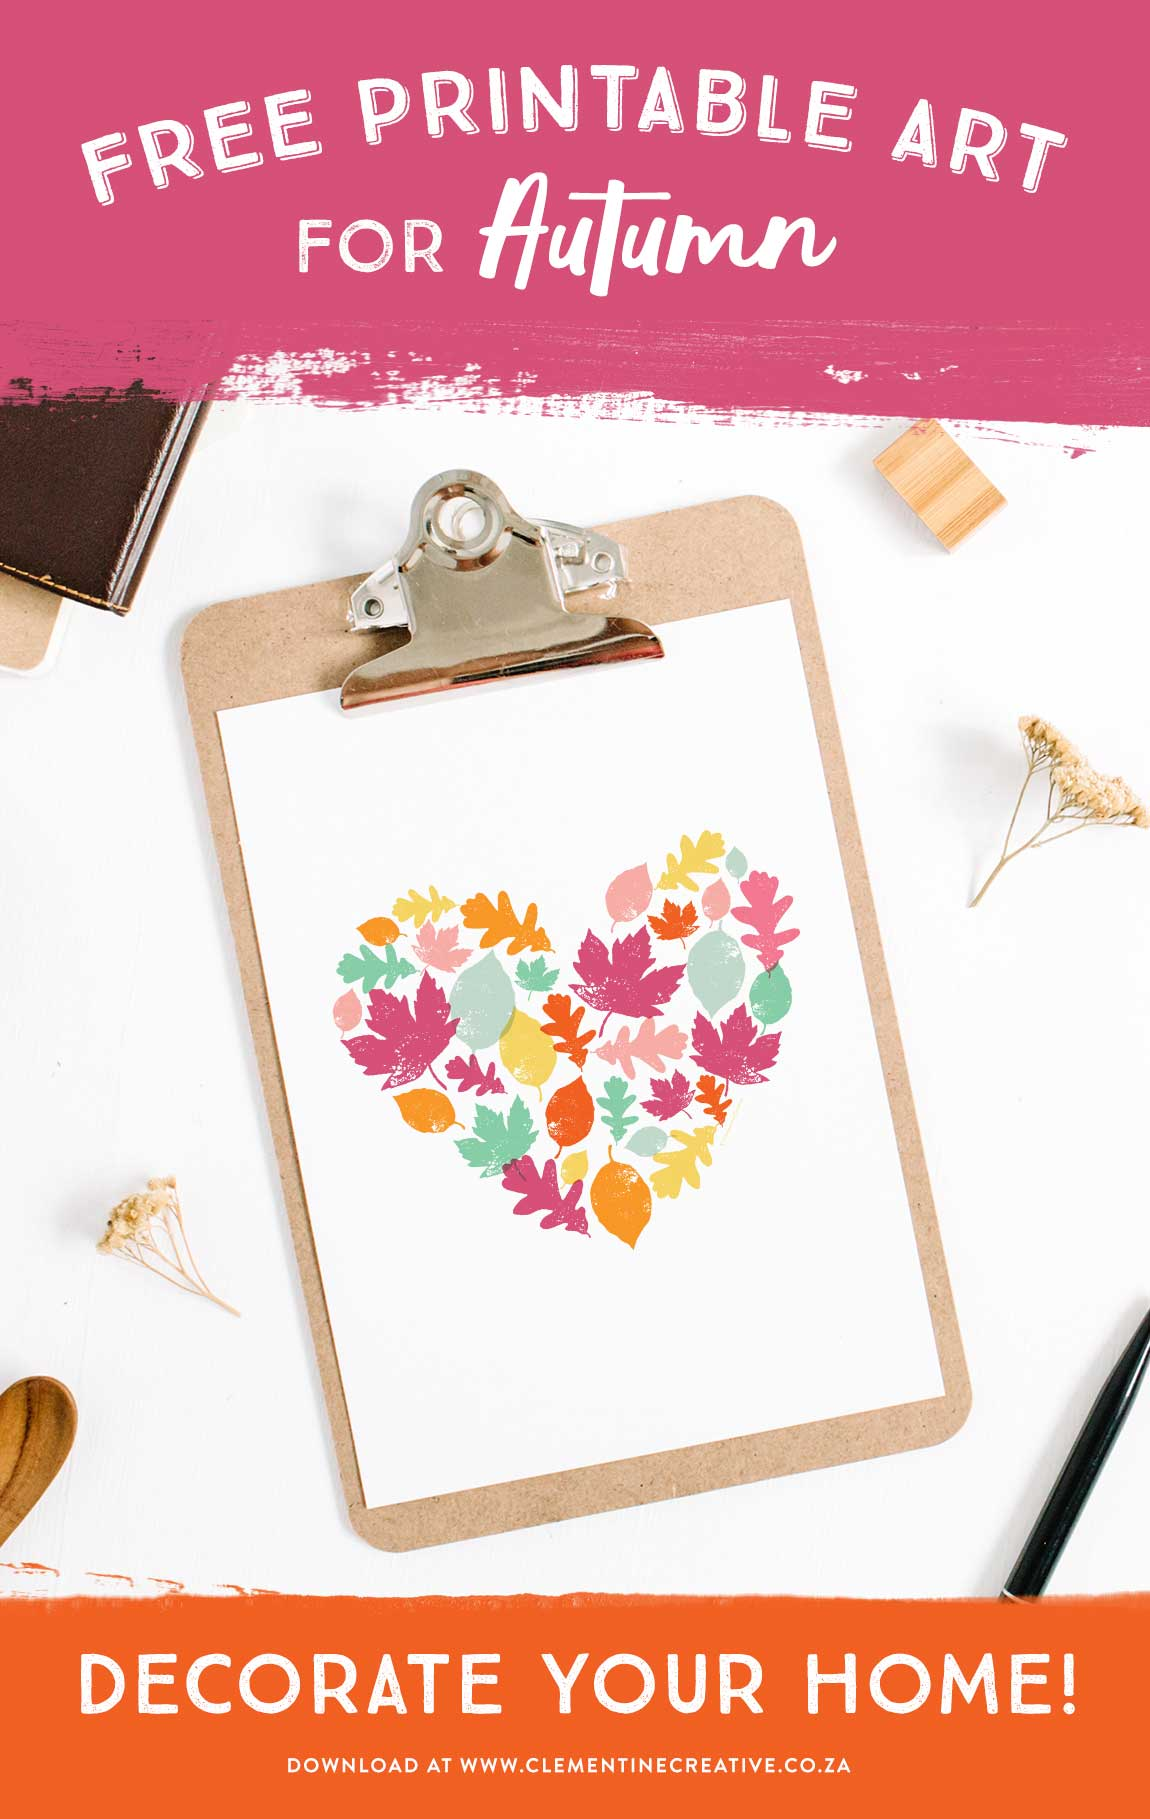 Decorate your home for Fall with this free printable Autumn leaves art print. Click here to download.